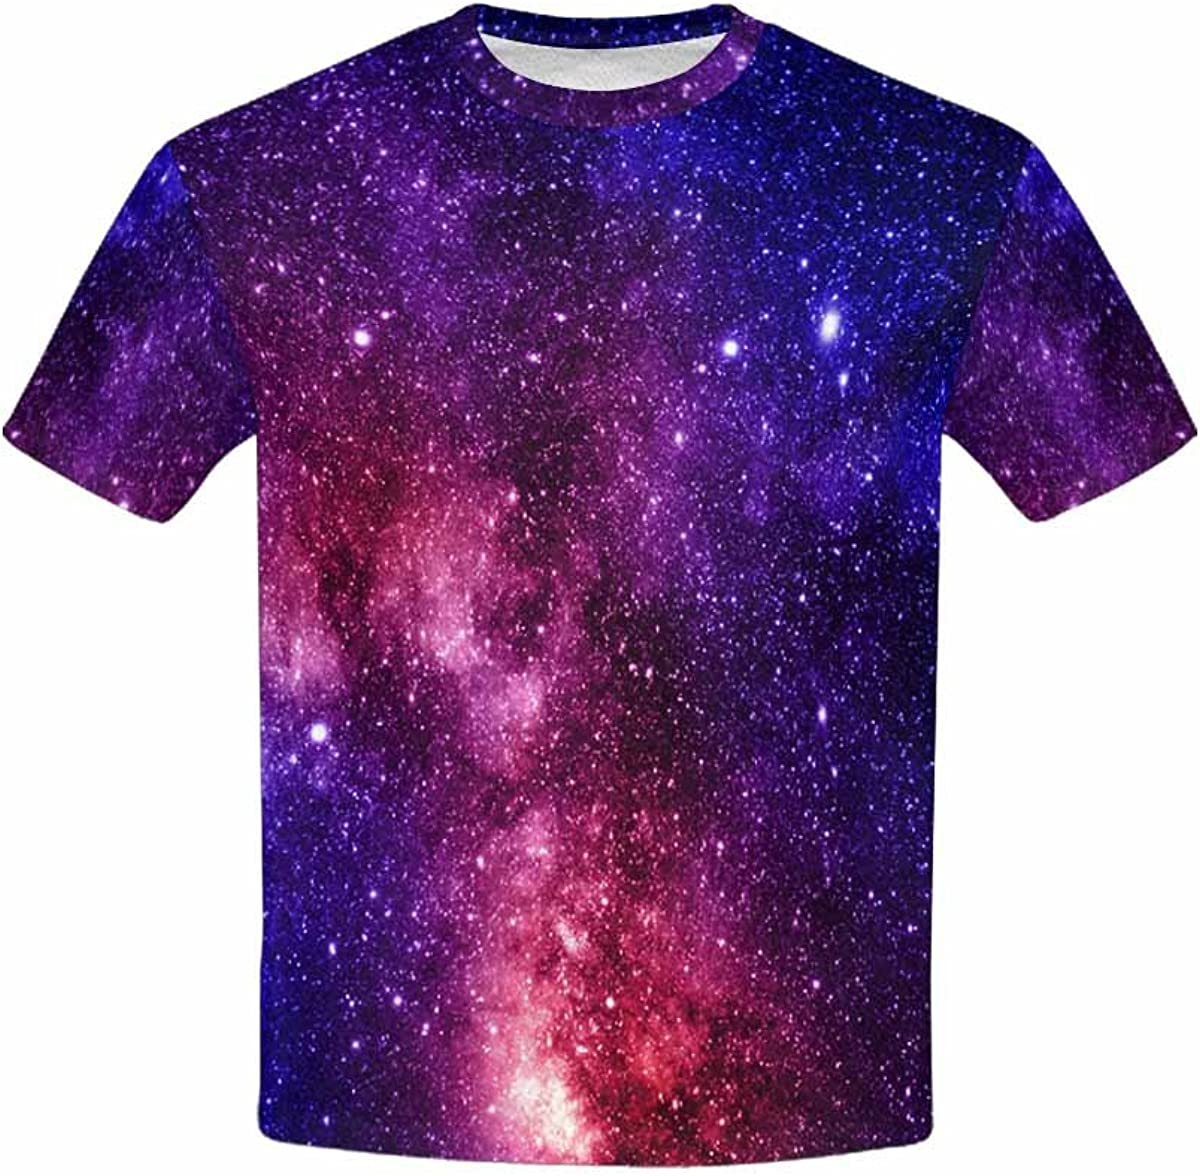 INTERESTPRINT Youth T-Shirts Galaxy in Space XS-XL